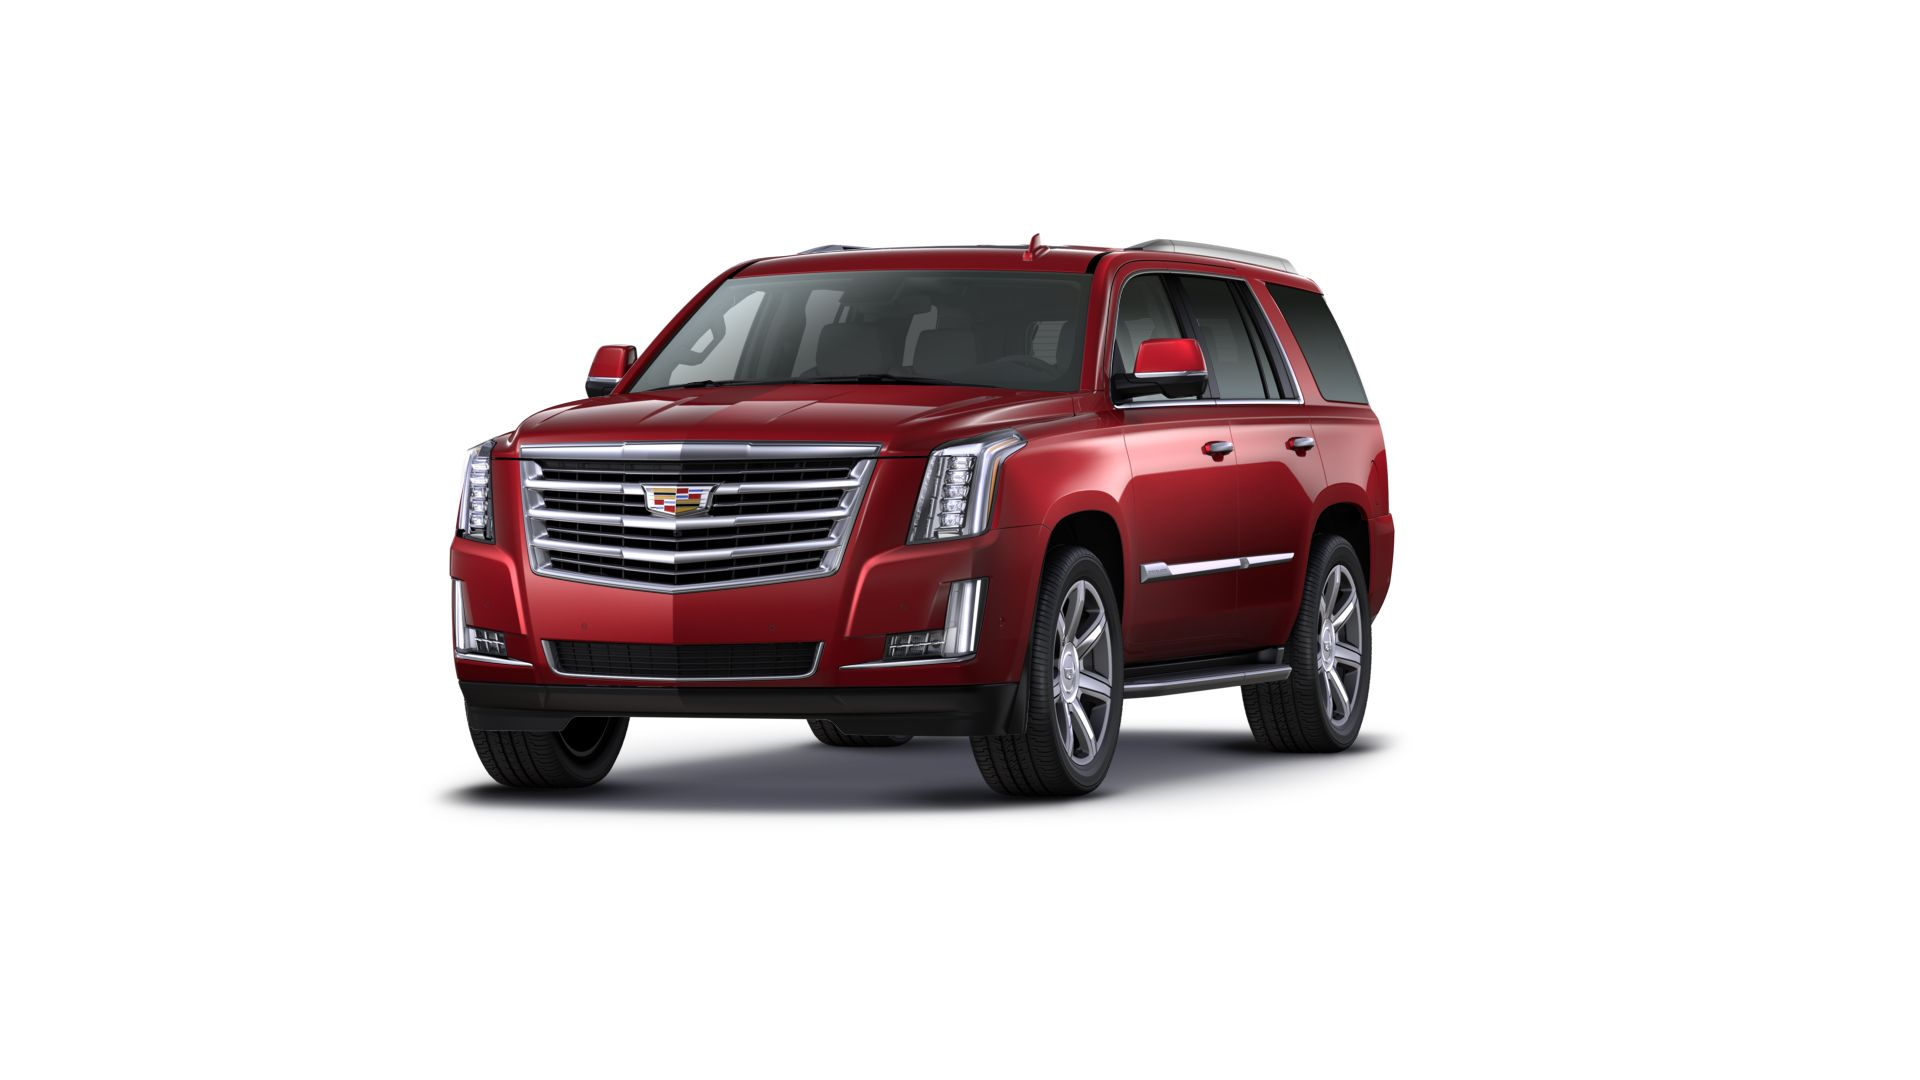 2017 Cadillac Escalade 6.2L V8 Luxury